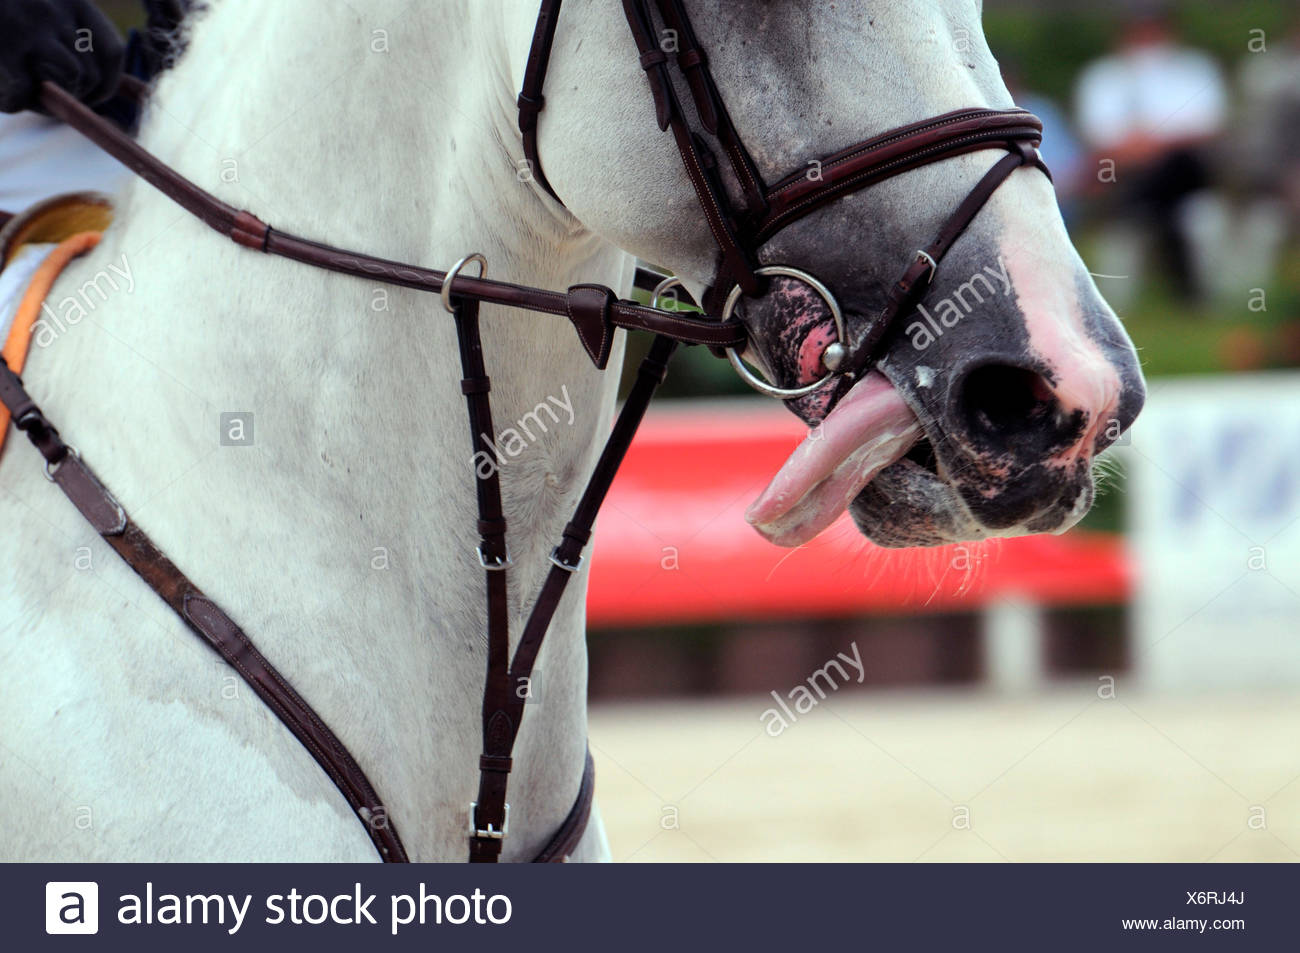 German Warmblood Horse, Show Jumping / horse tack, figure-8-noseband